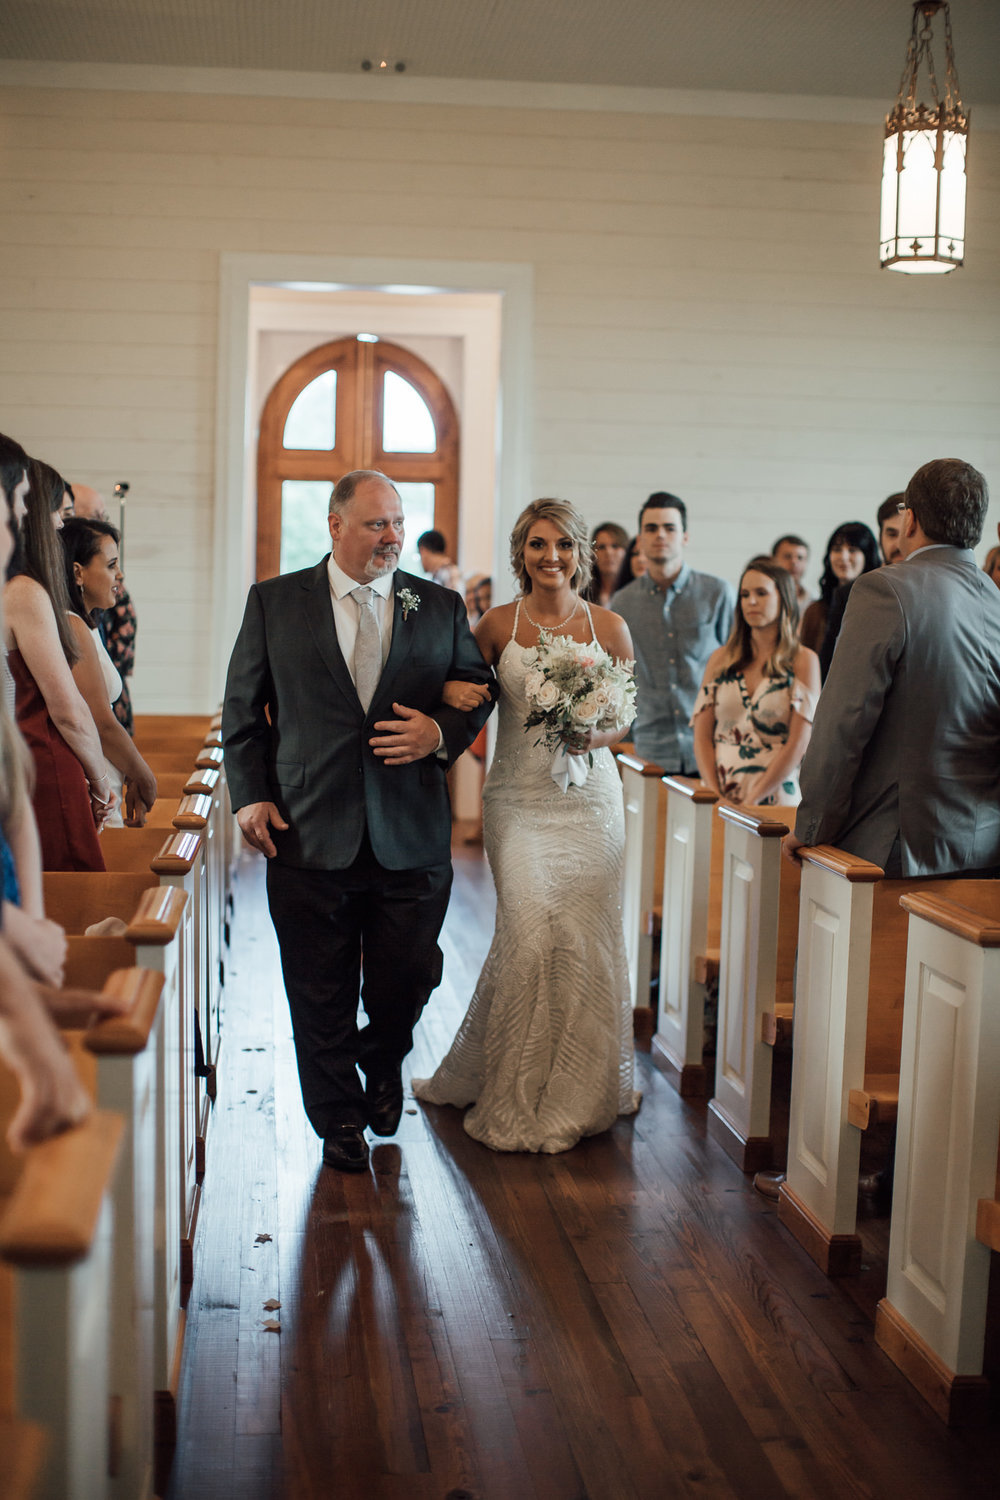 cassie-cook-photography-taylor-ms-memphis-wedding-photographer-the-chapel-at-plein-air-taylor-inn